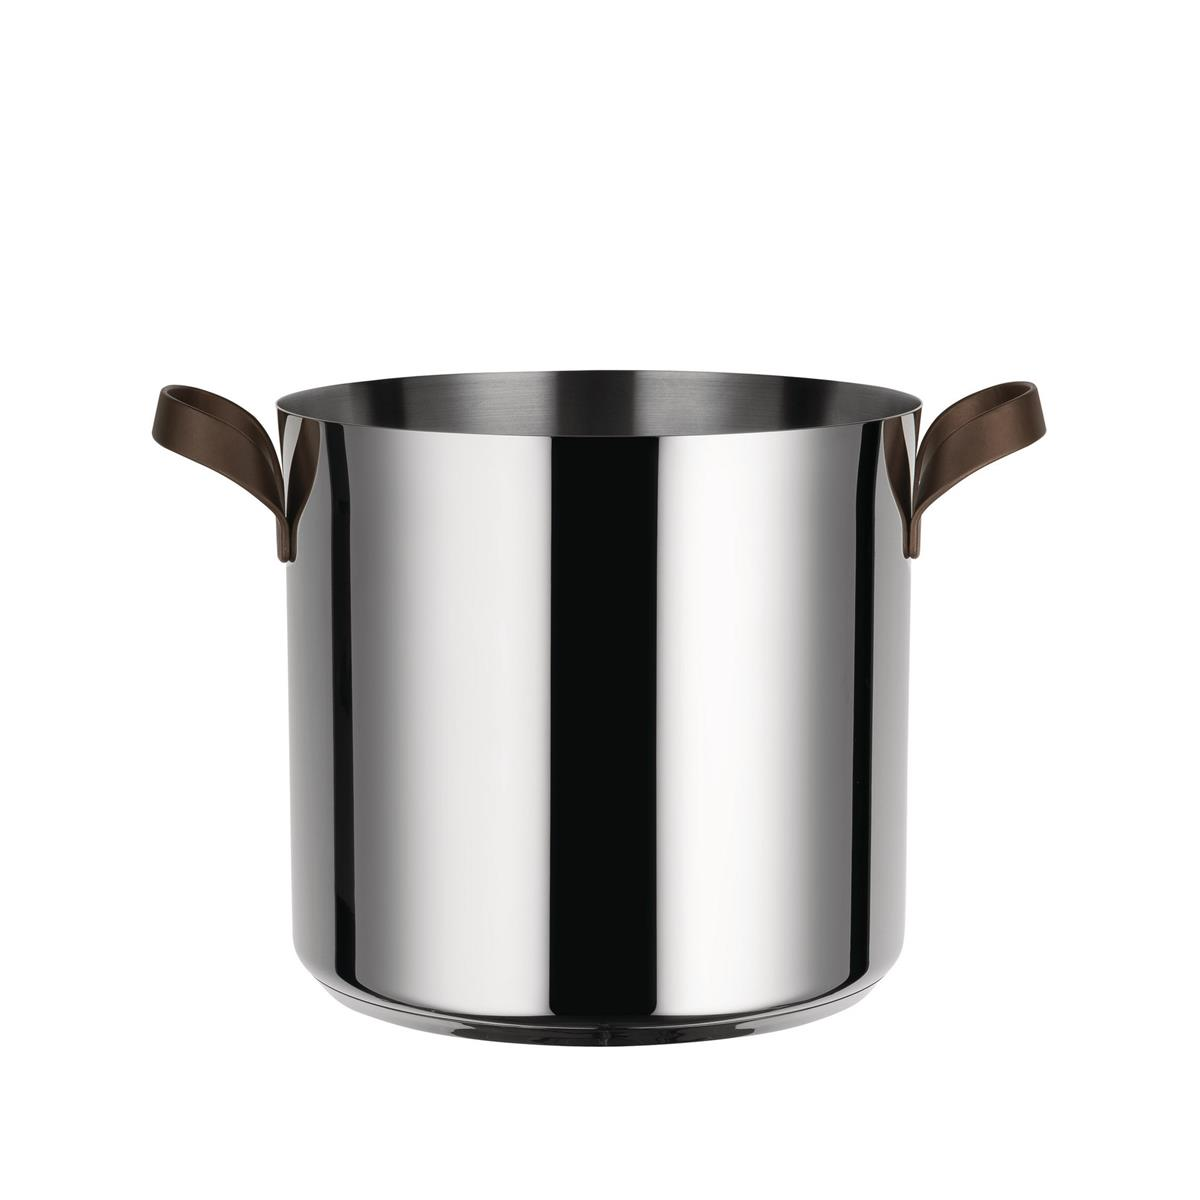 Alessi-edo Pot in 18/10 stainless steel suitable for induction